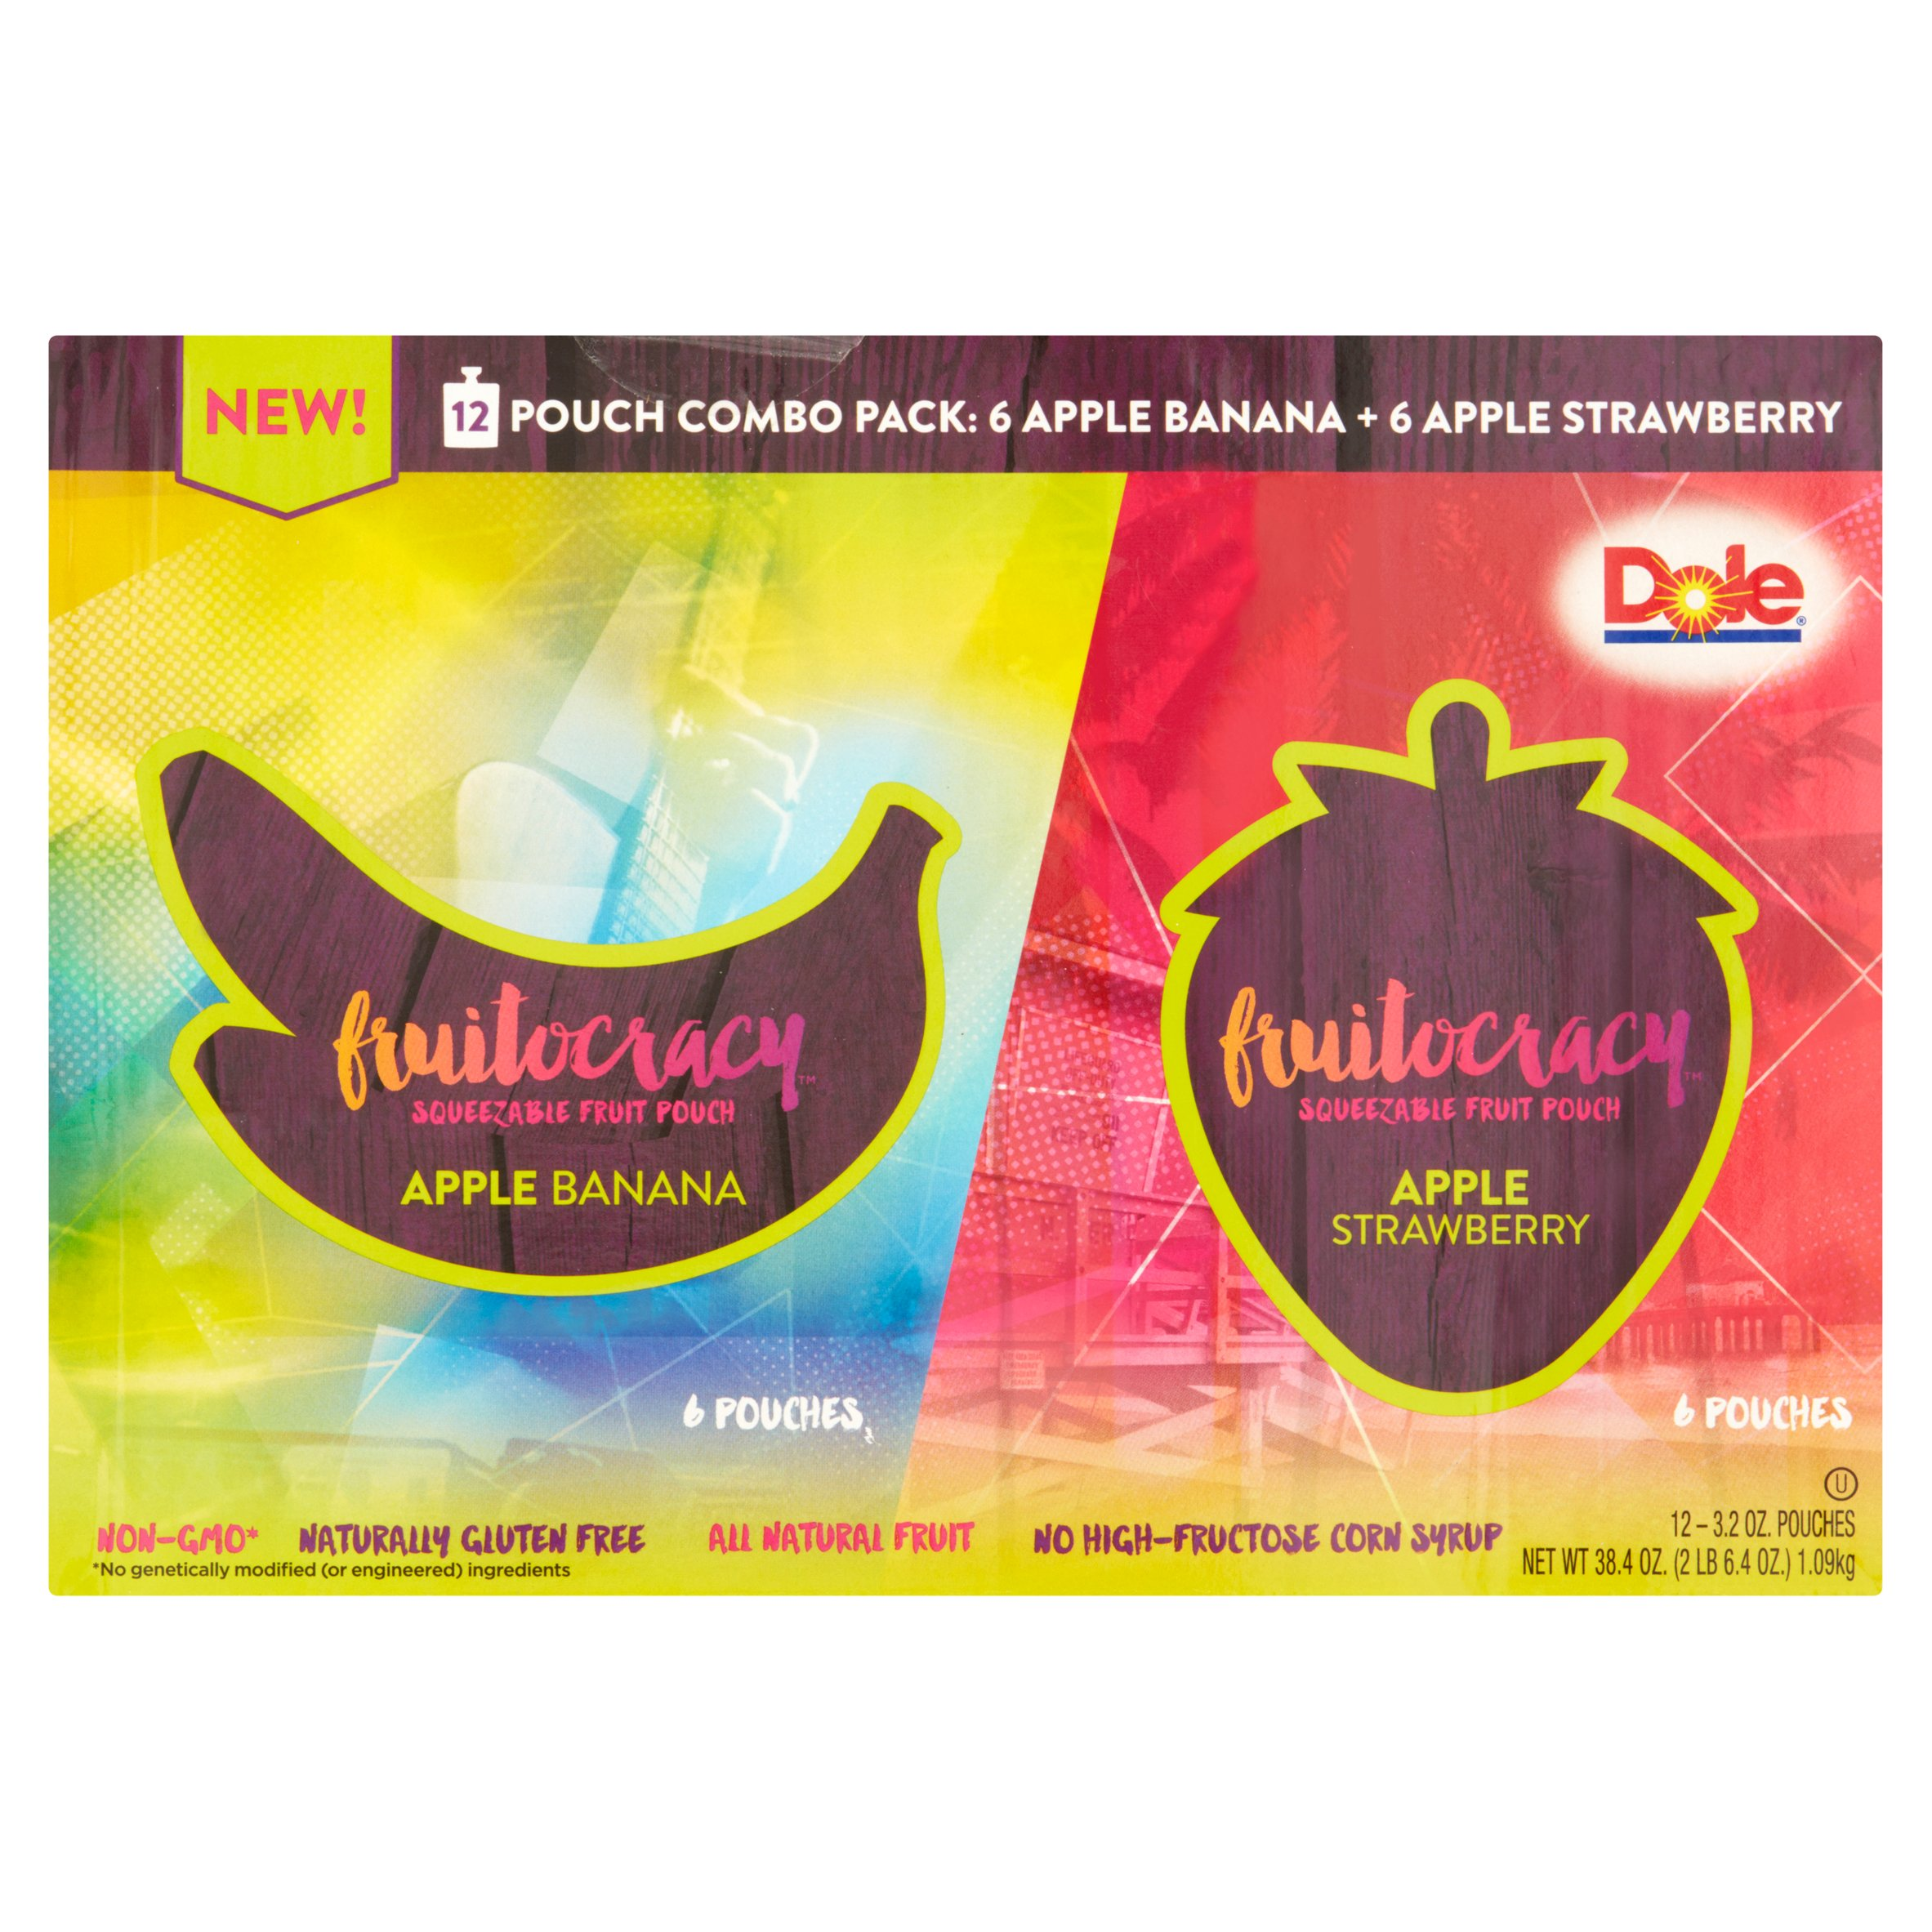 Dole Fruitocracy Squeezable Fruit Pouch Combo Pack, 3.2 oz, 12 count